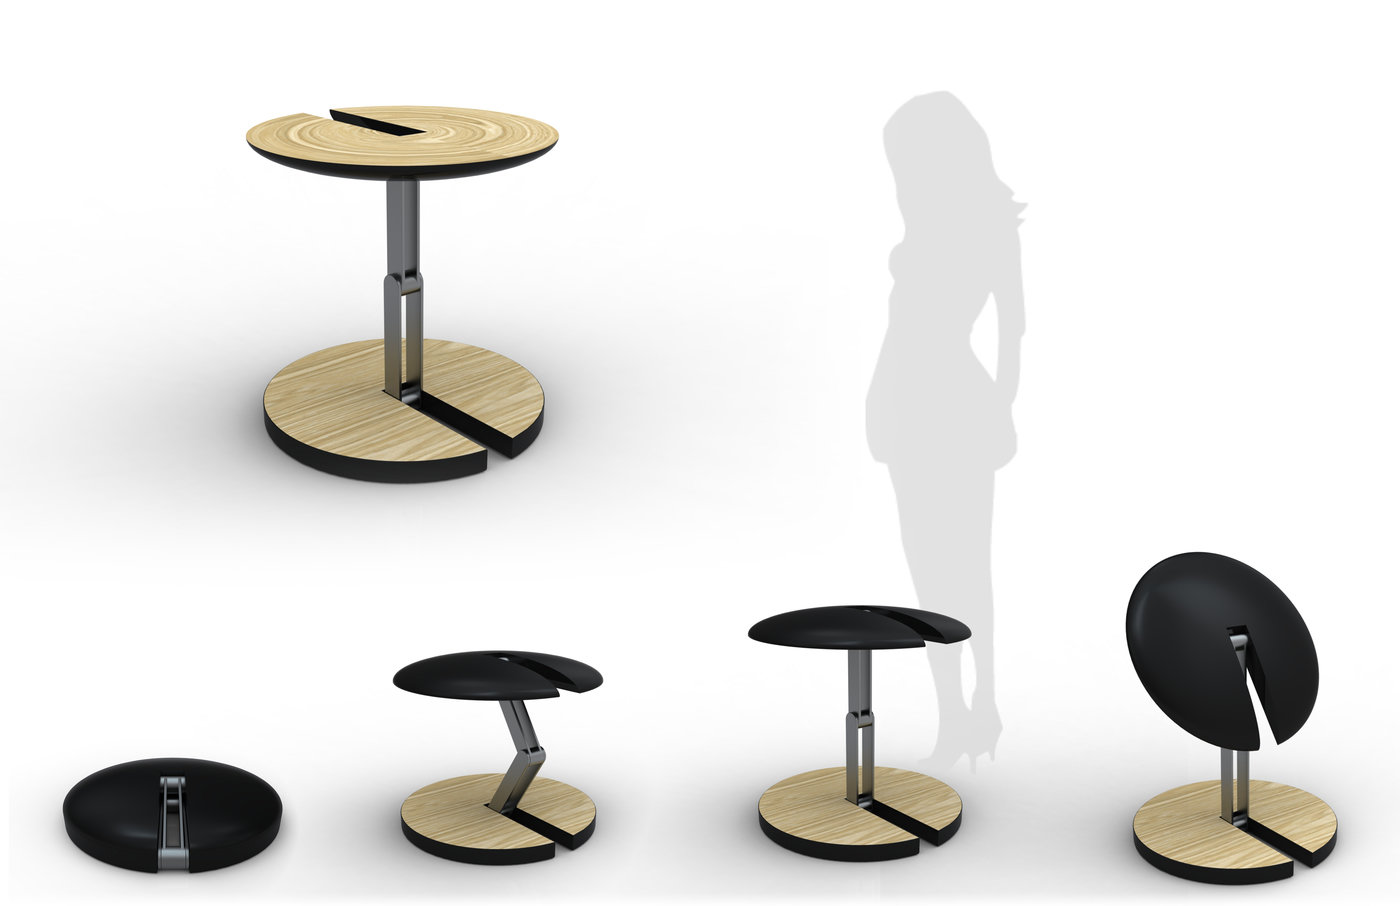 Senior Thesis Furniture   Preliminary Concepts For Members Of A Collapsible  Furniture Family.